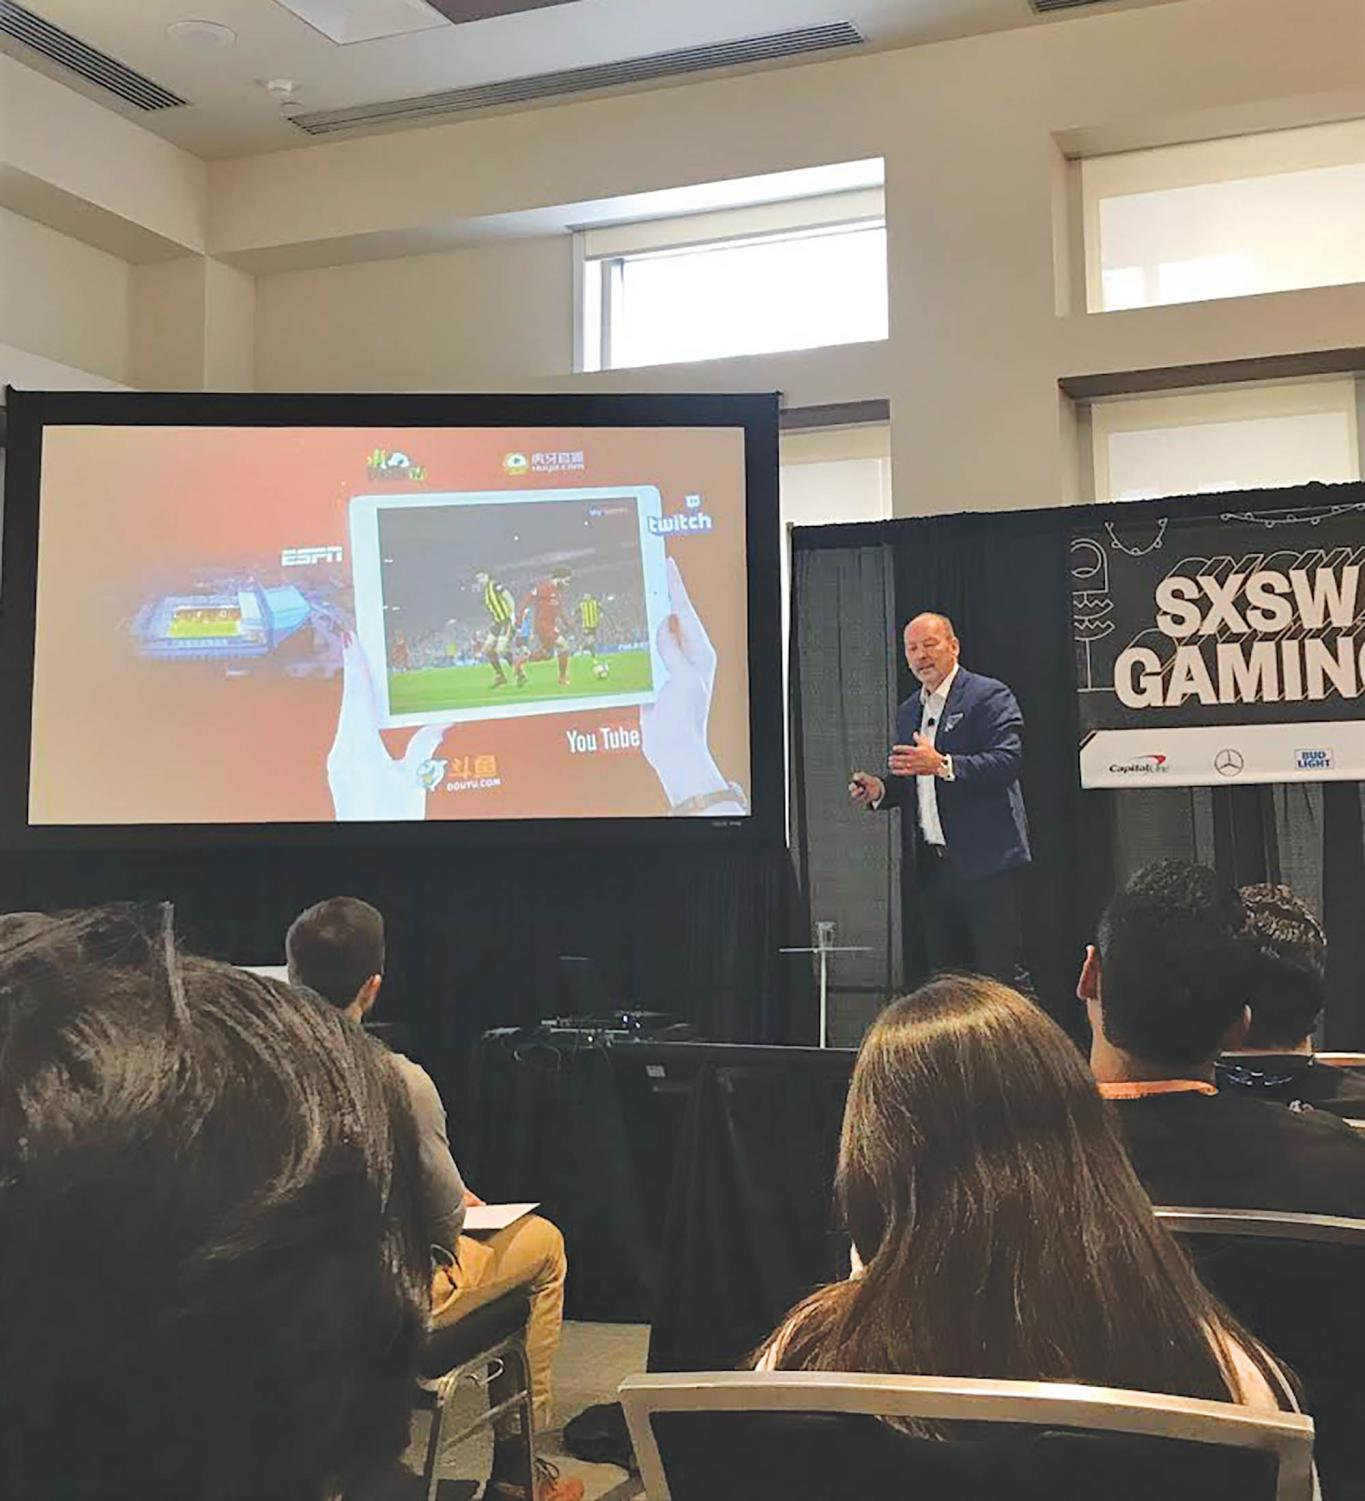 Peter Moore speaks at SXSW about the direction that sports is heading and how gaming would play a part in that.